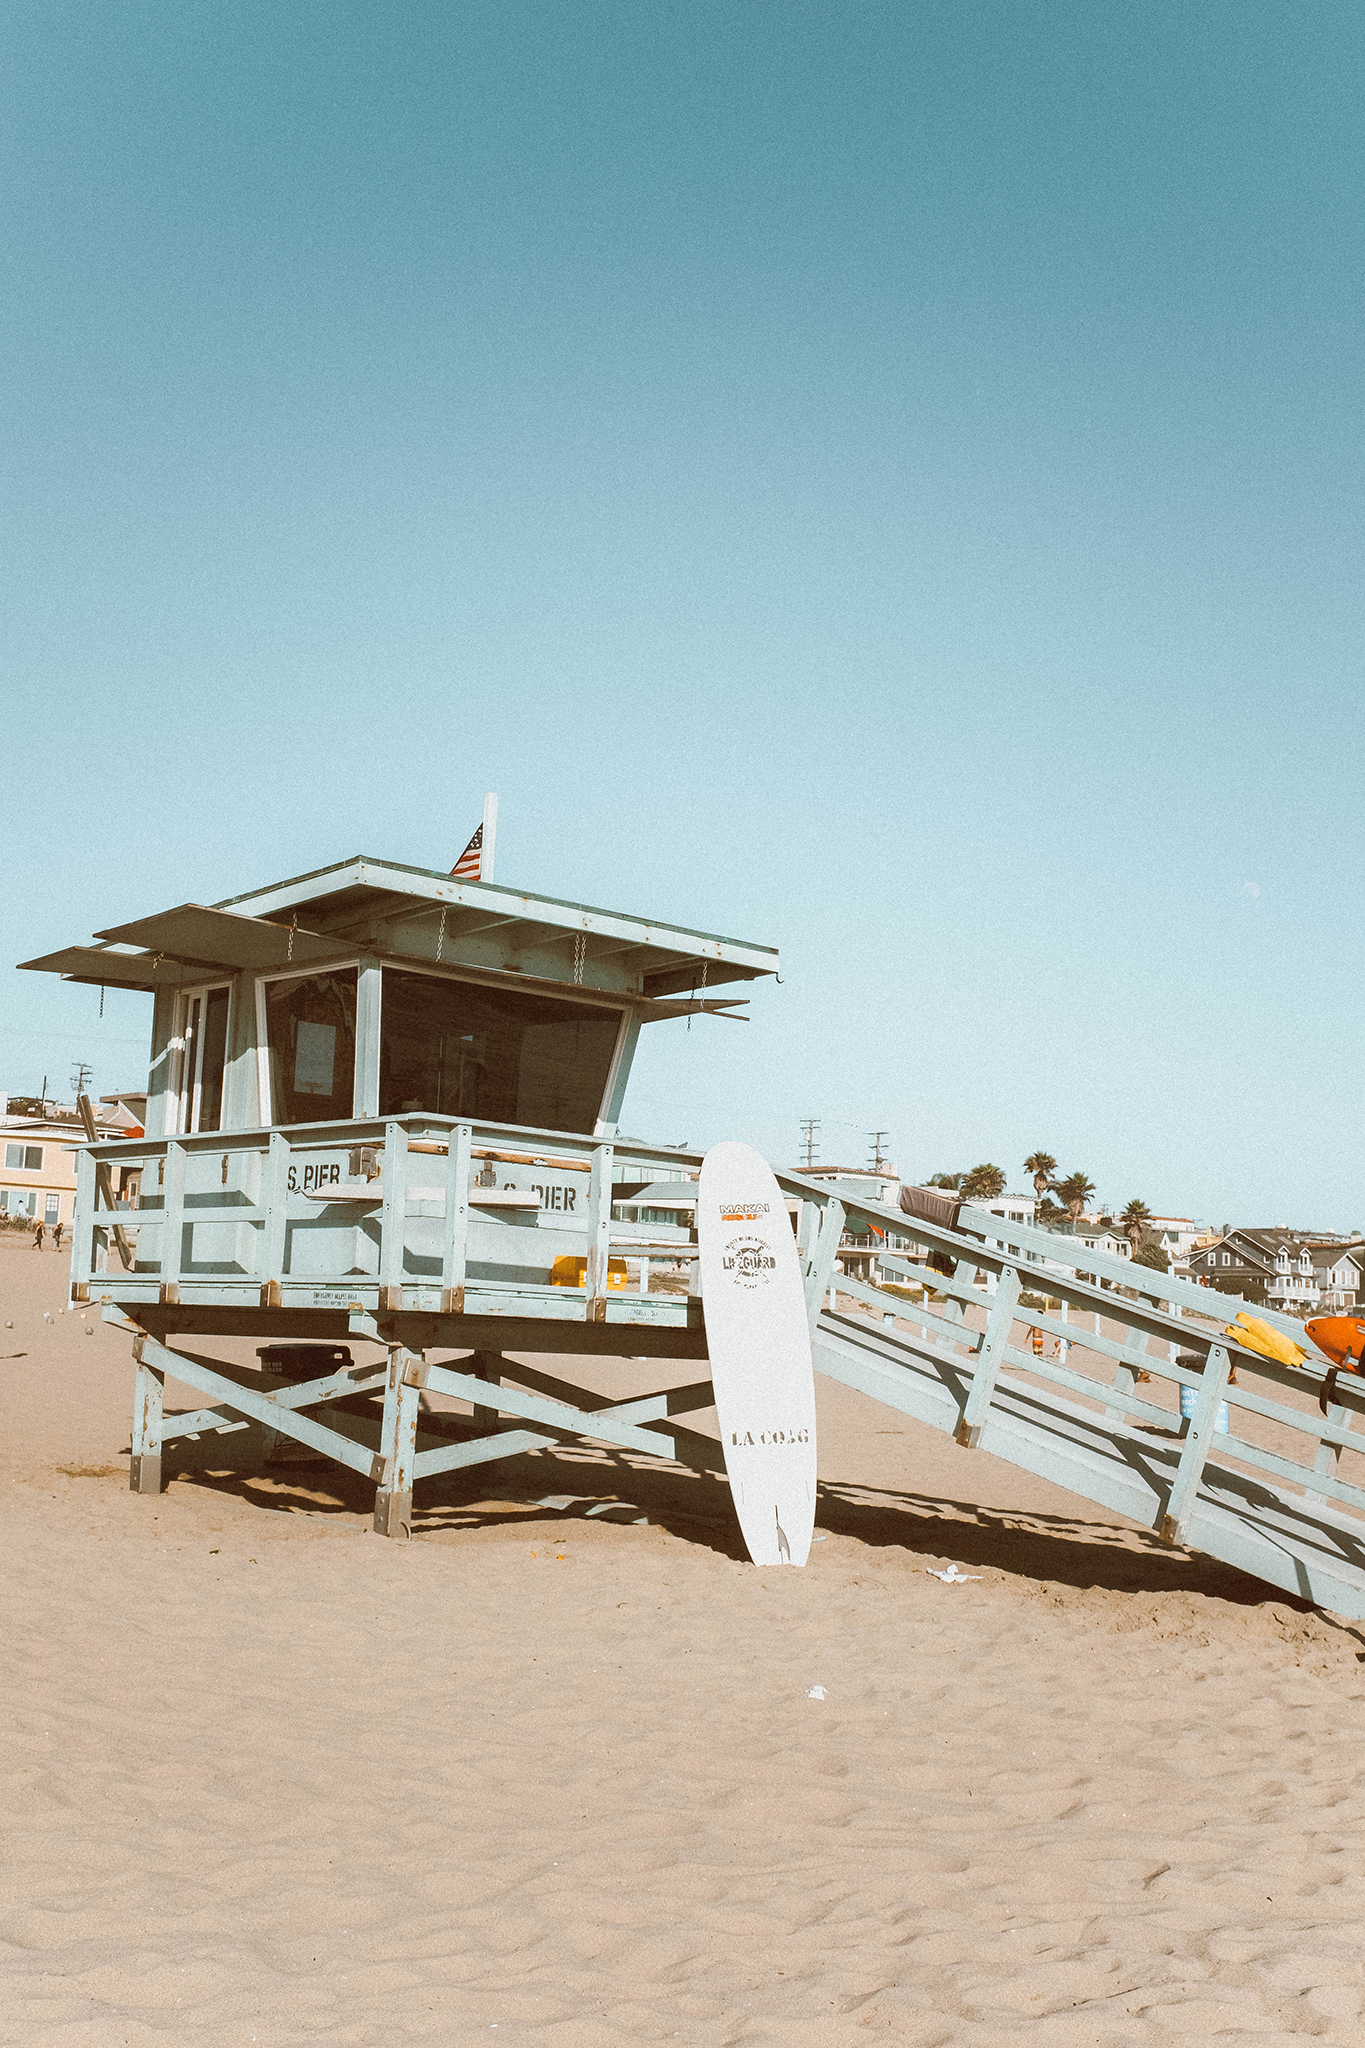 lifeguard house at the beach for perfect day in malibu